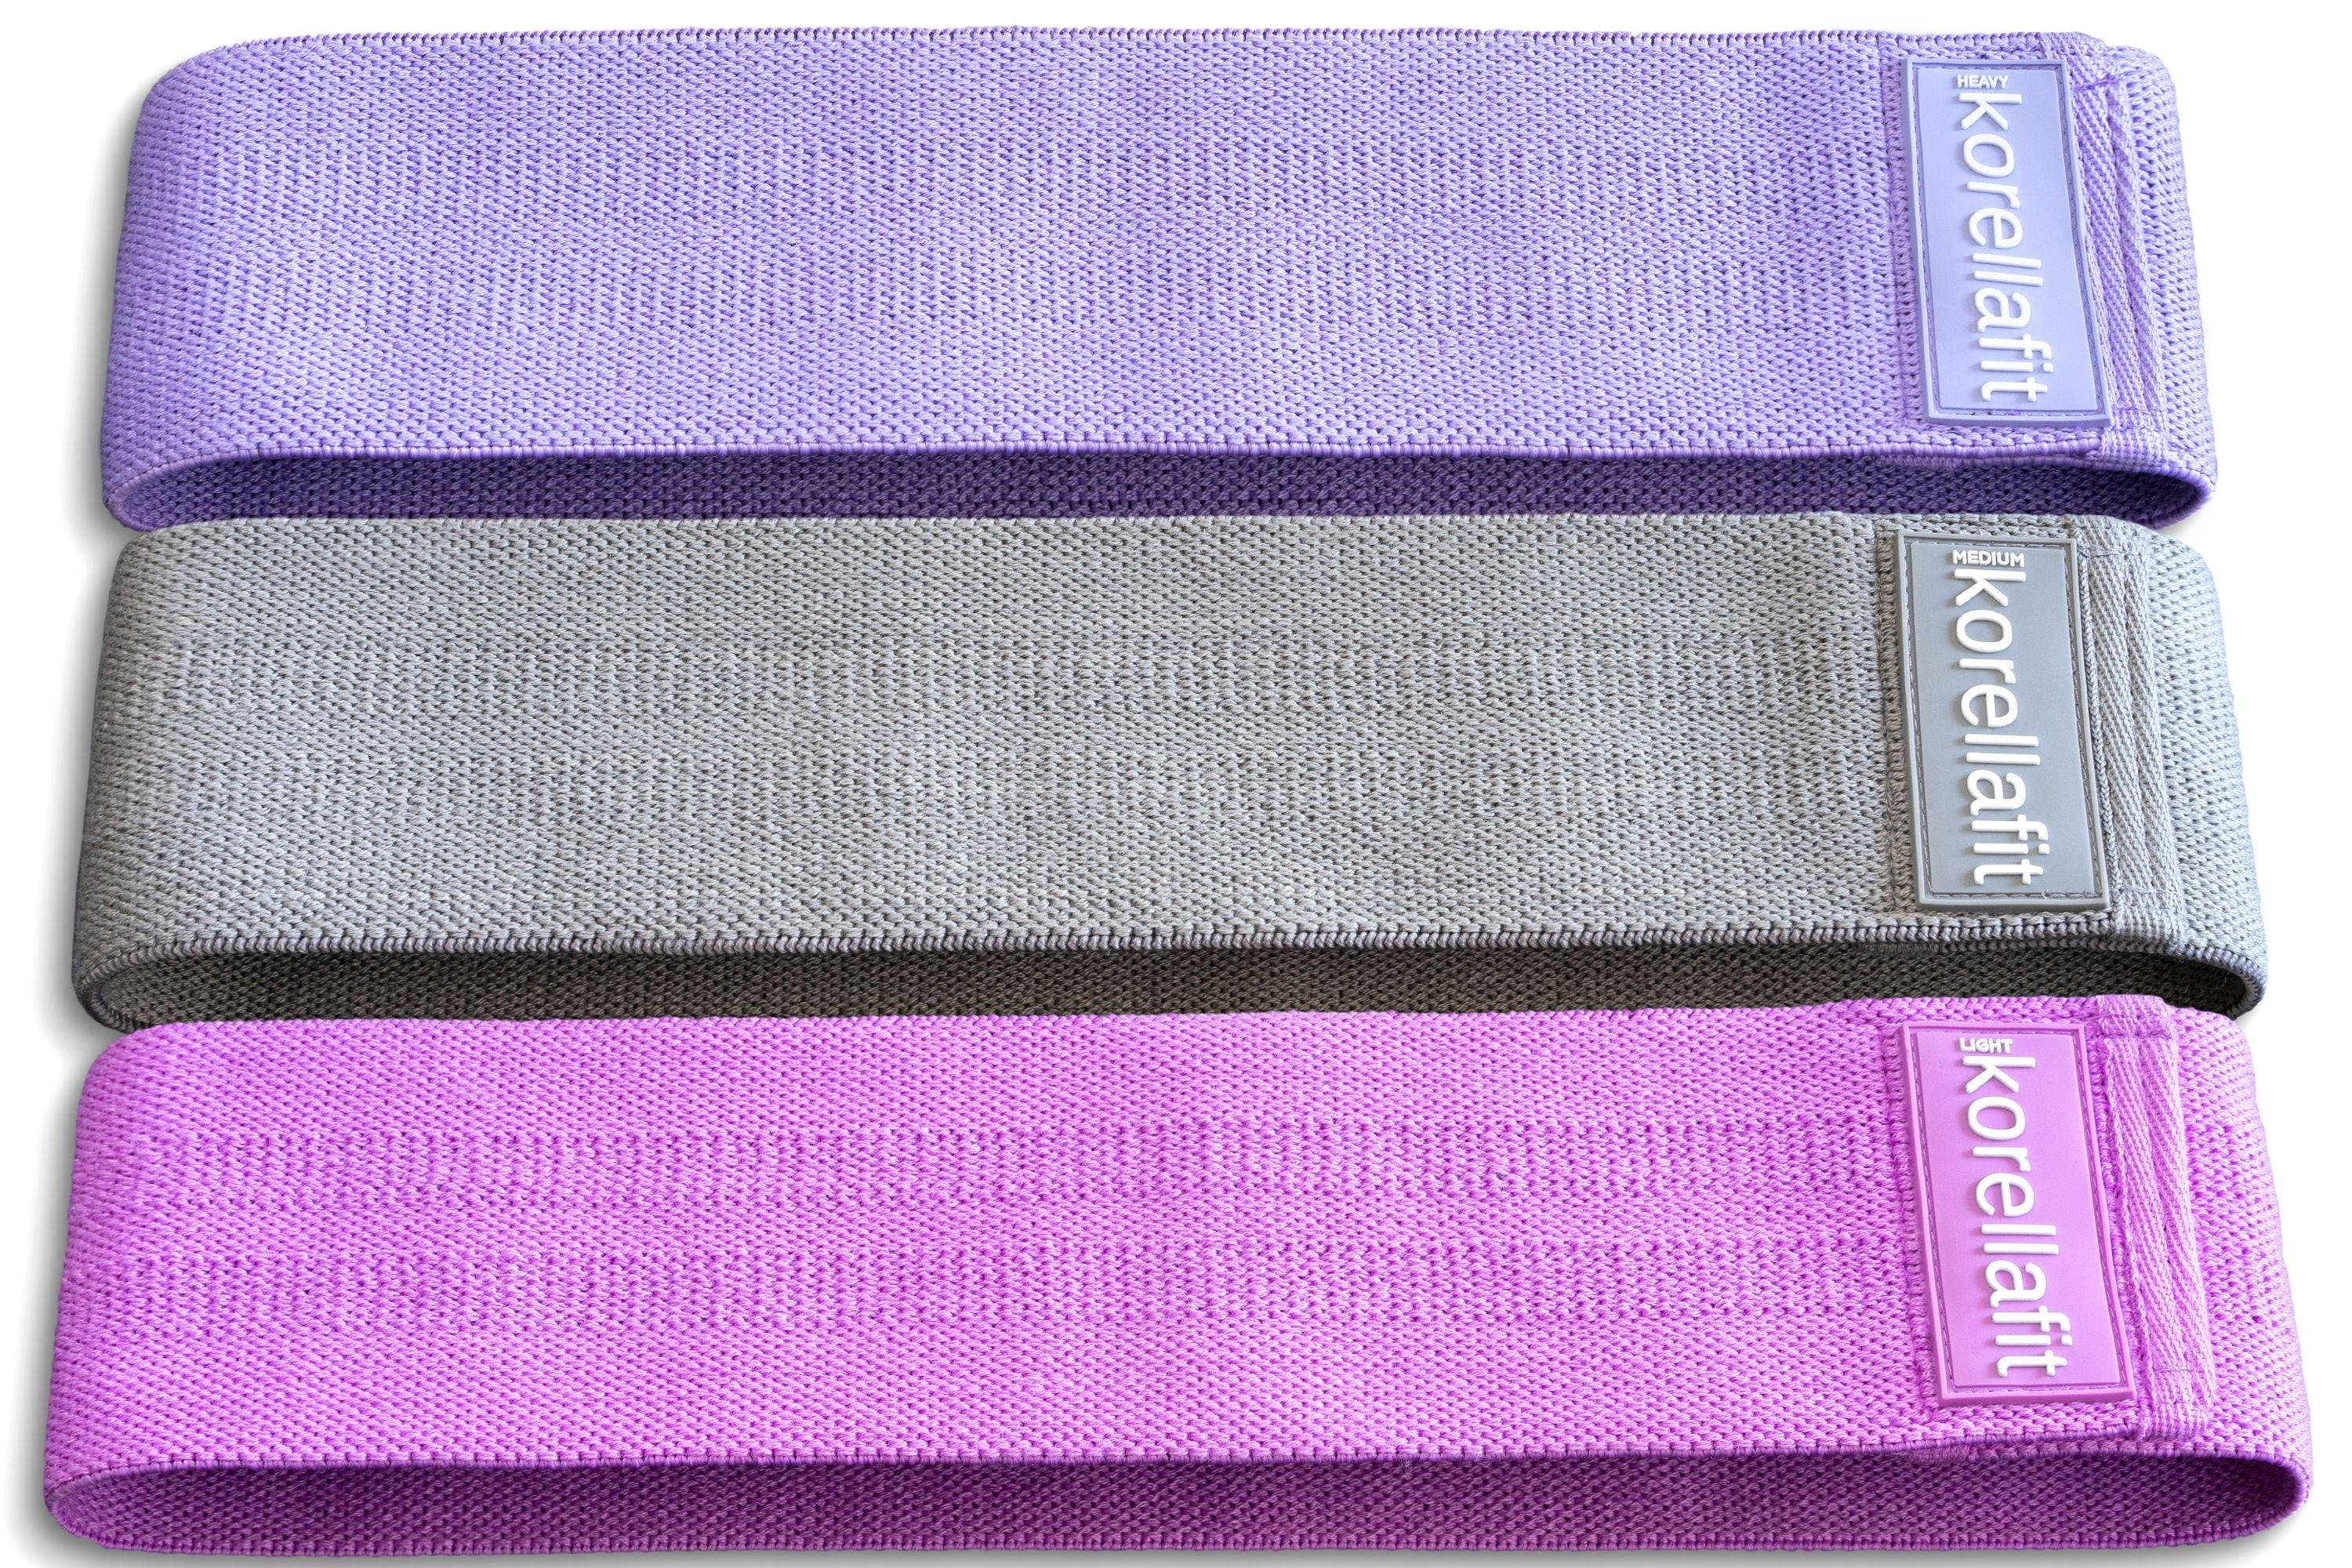 Fabric Booty Bands Package